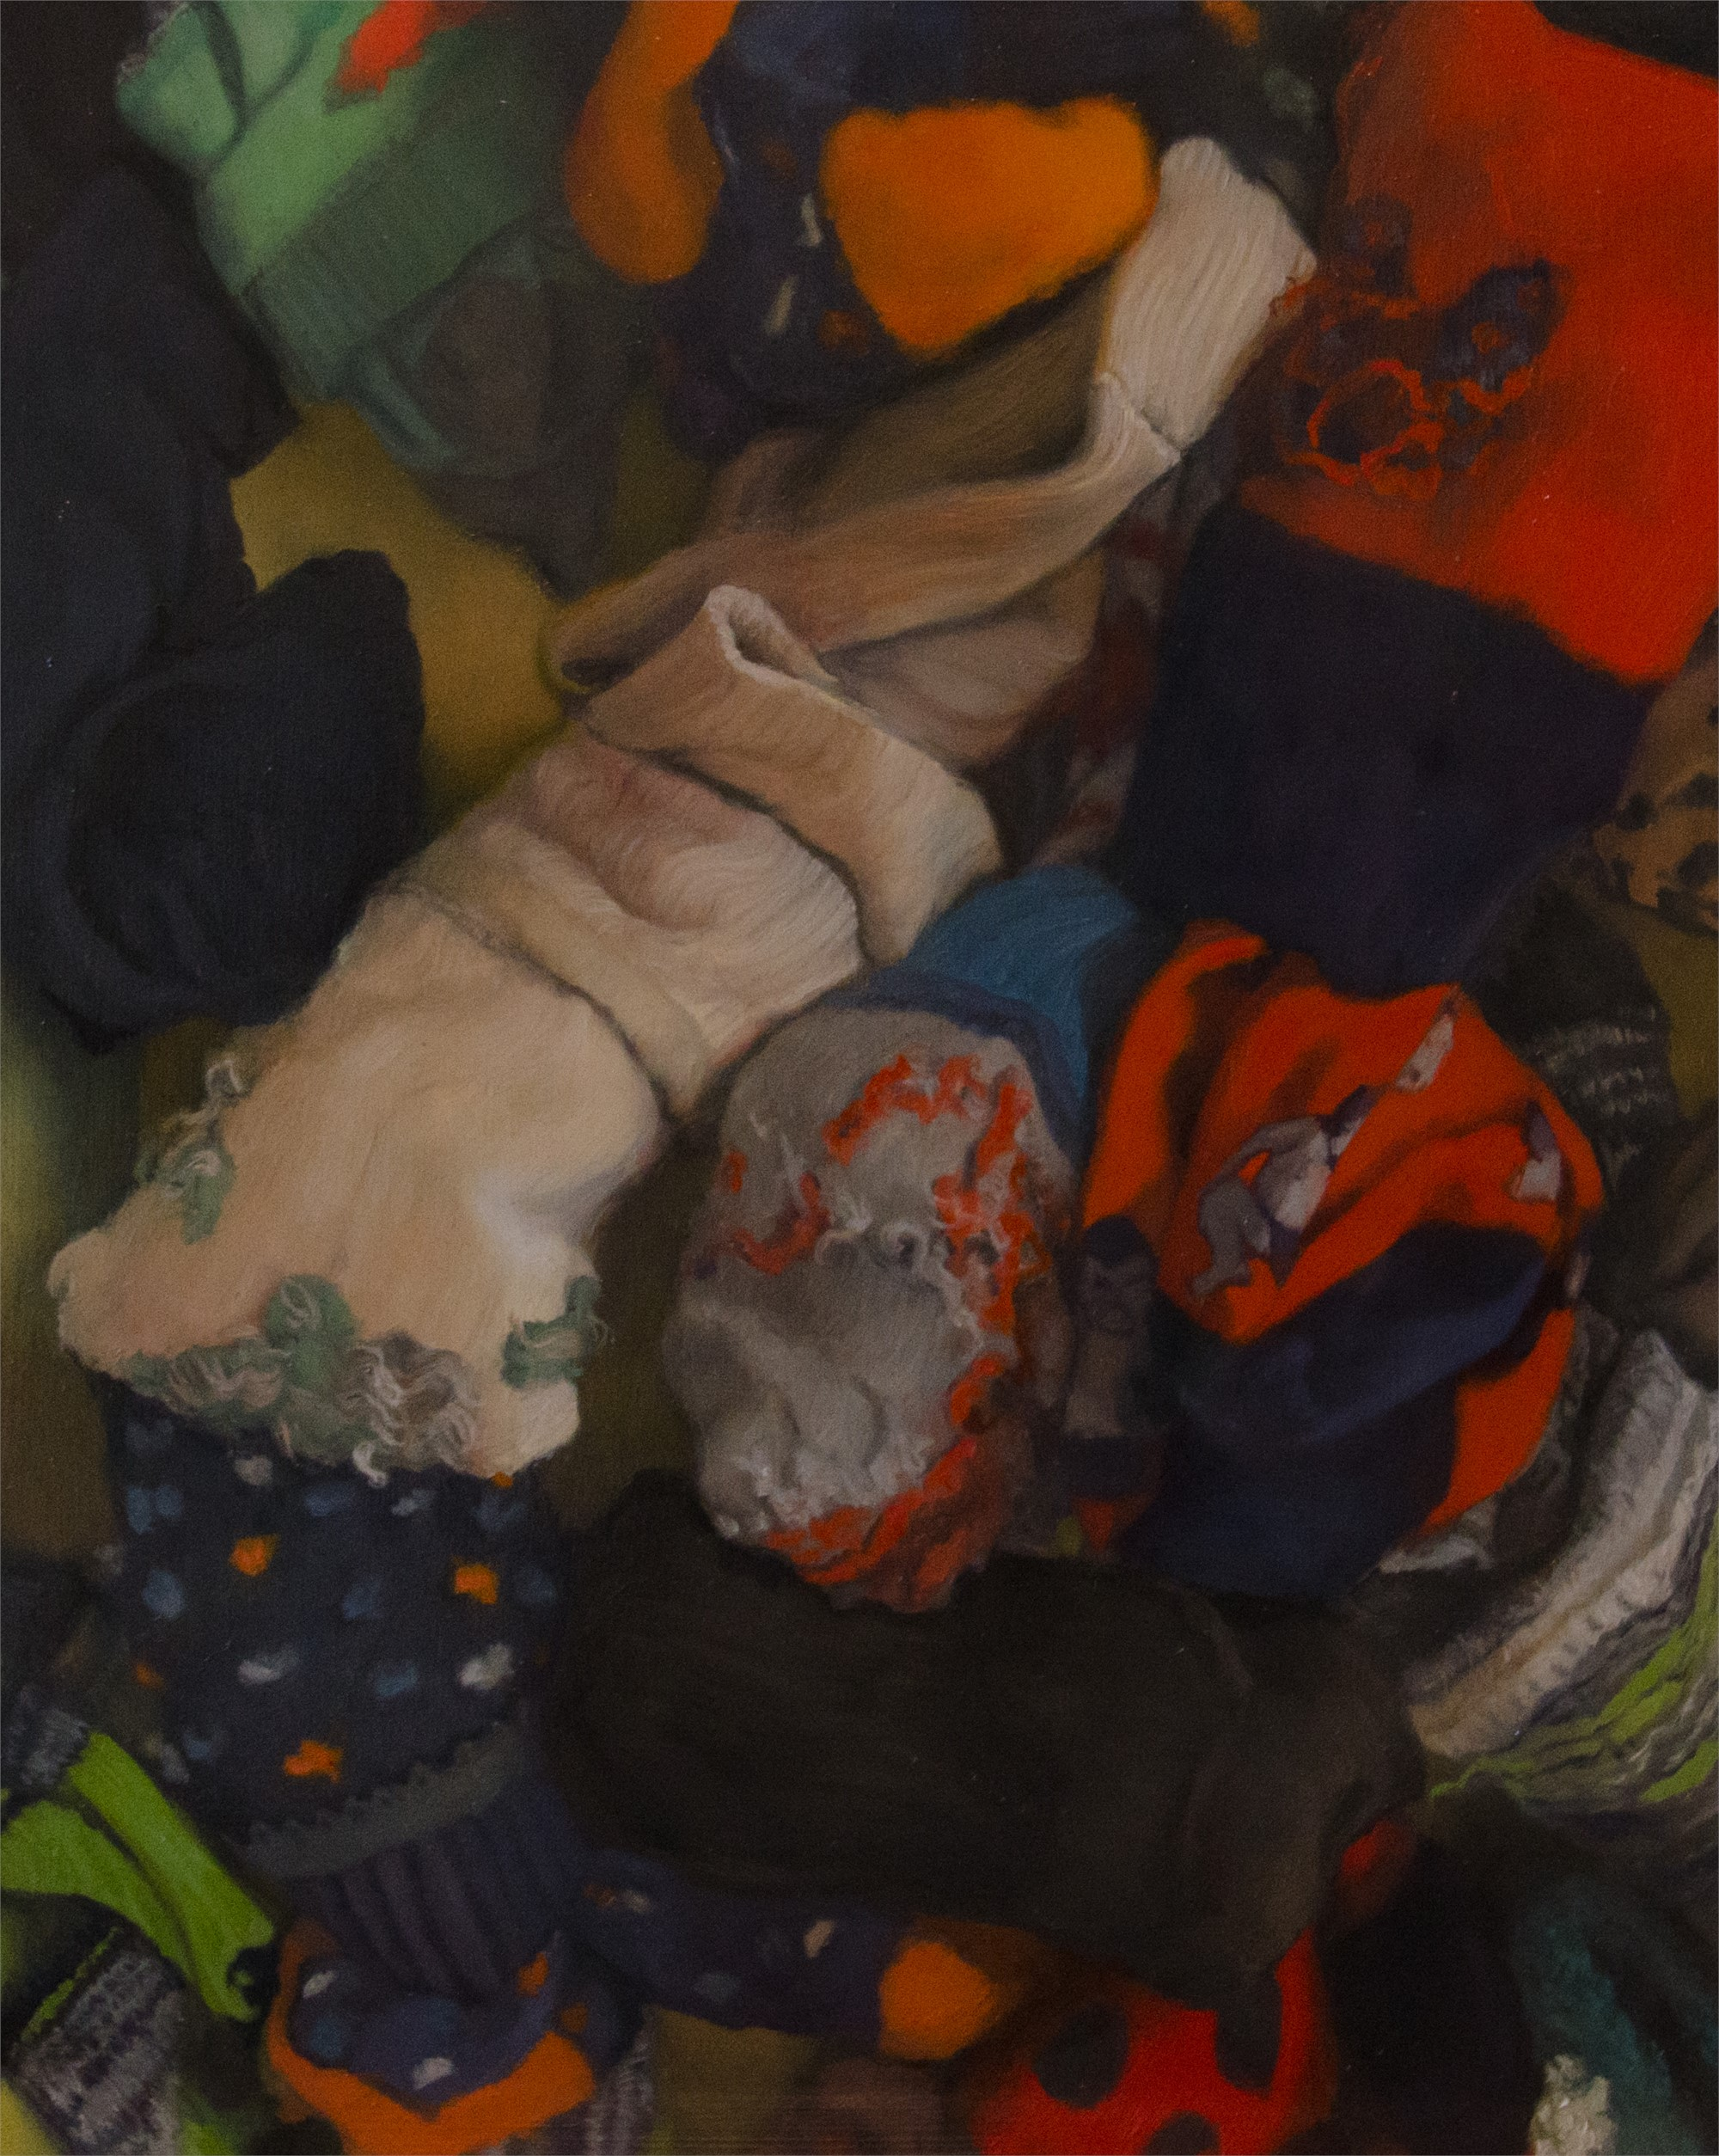 Inside, Sock Drawer by Erin Milan